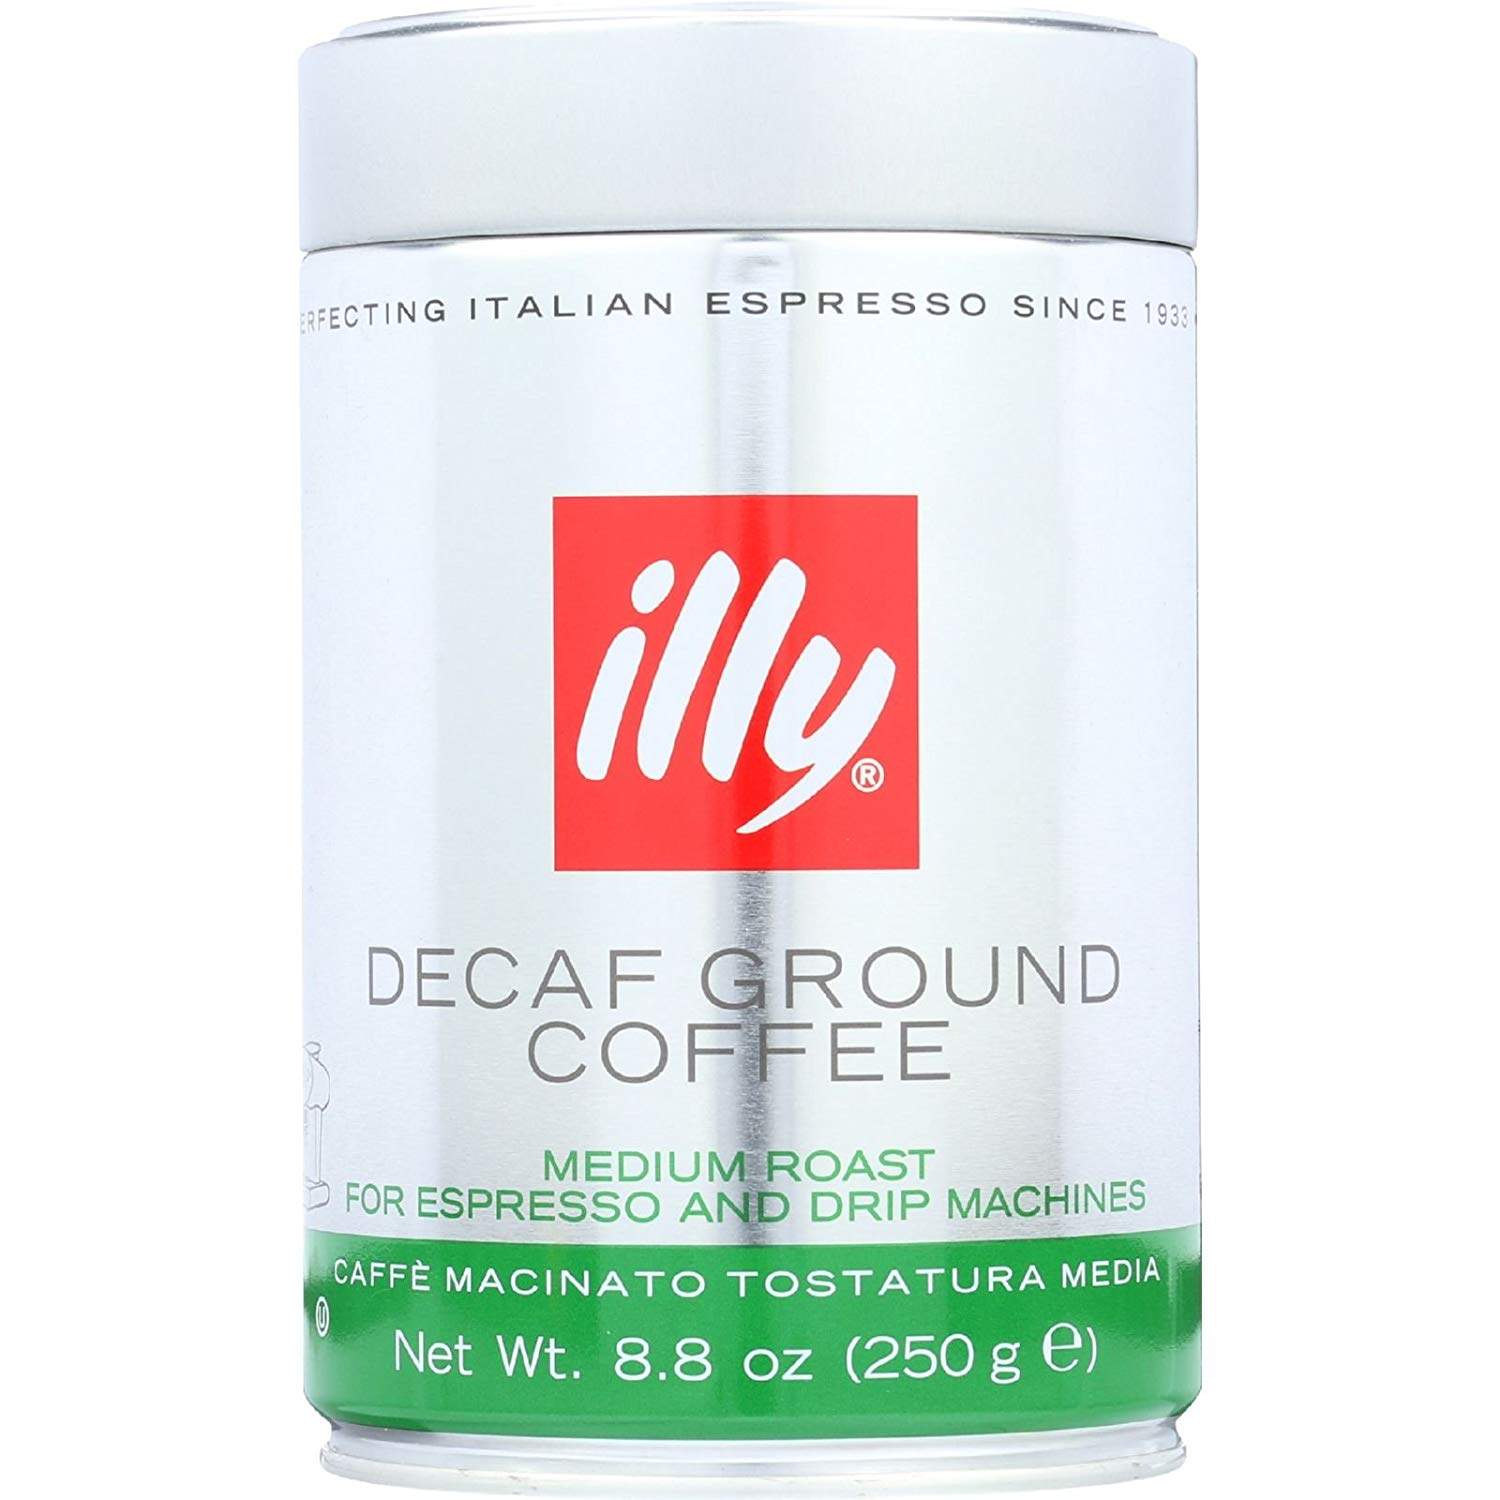 Illy Caffe Coffee Coffee - Espresso and Drip - Ground - Medium Roast - Decaf - 8.8 oz - case of 6 -